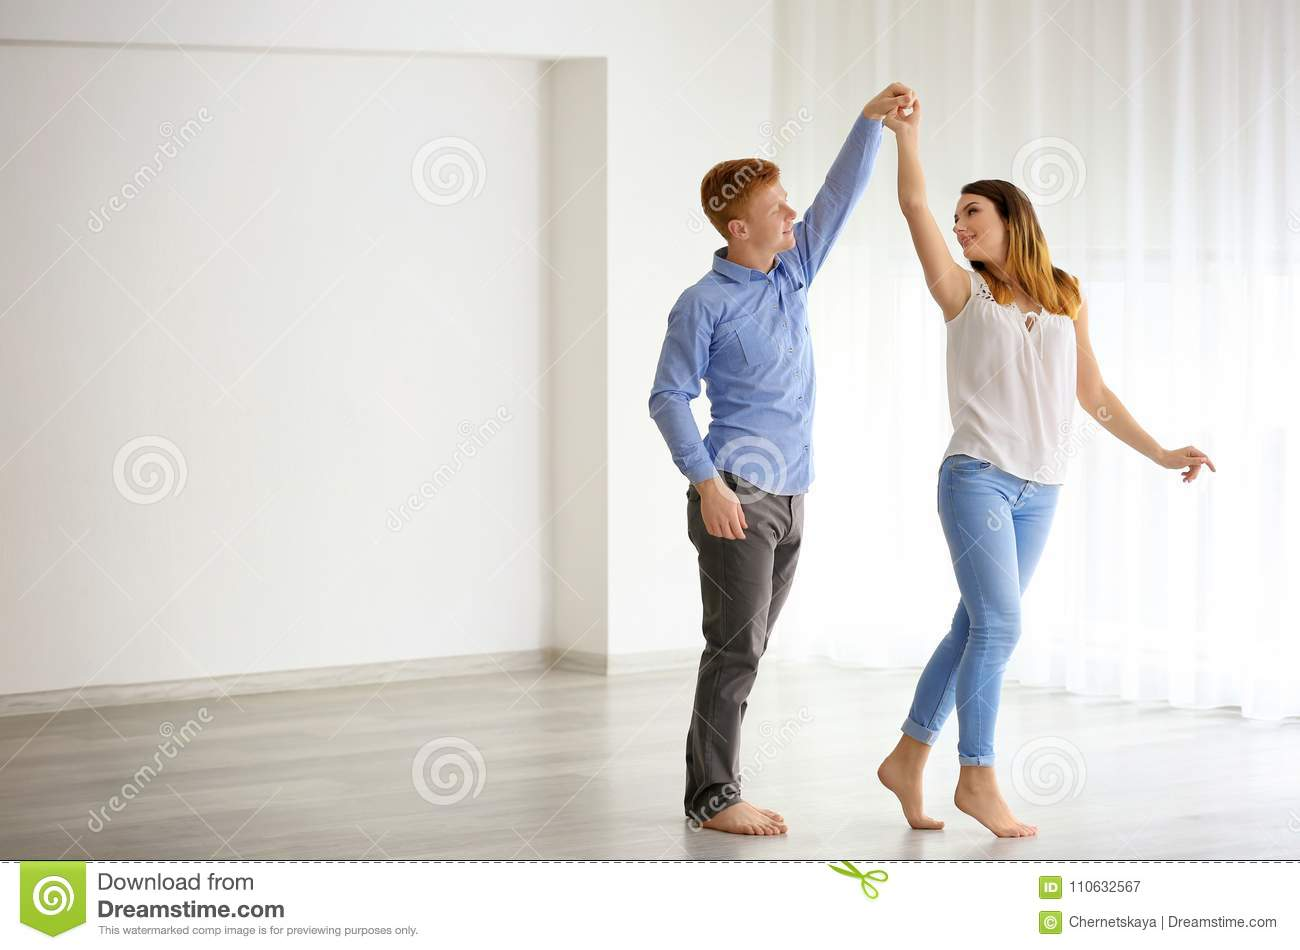 Belle danse de couples